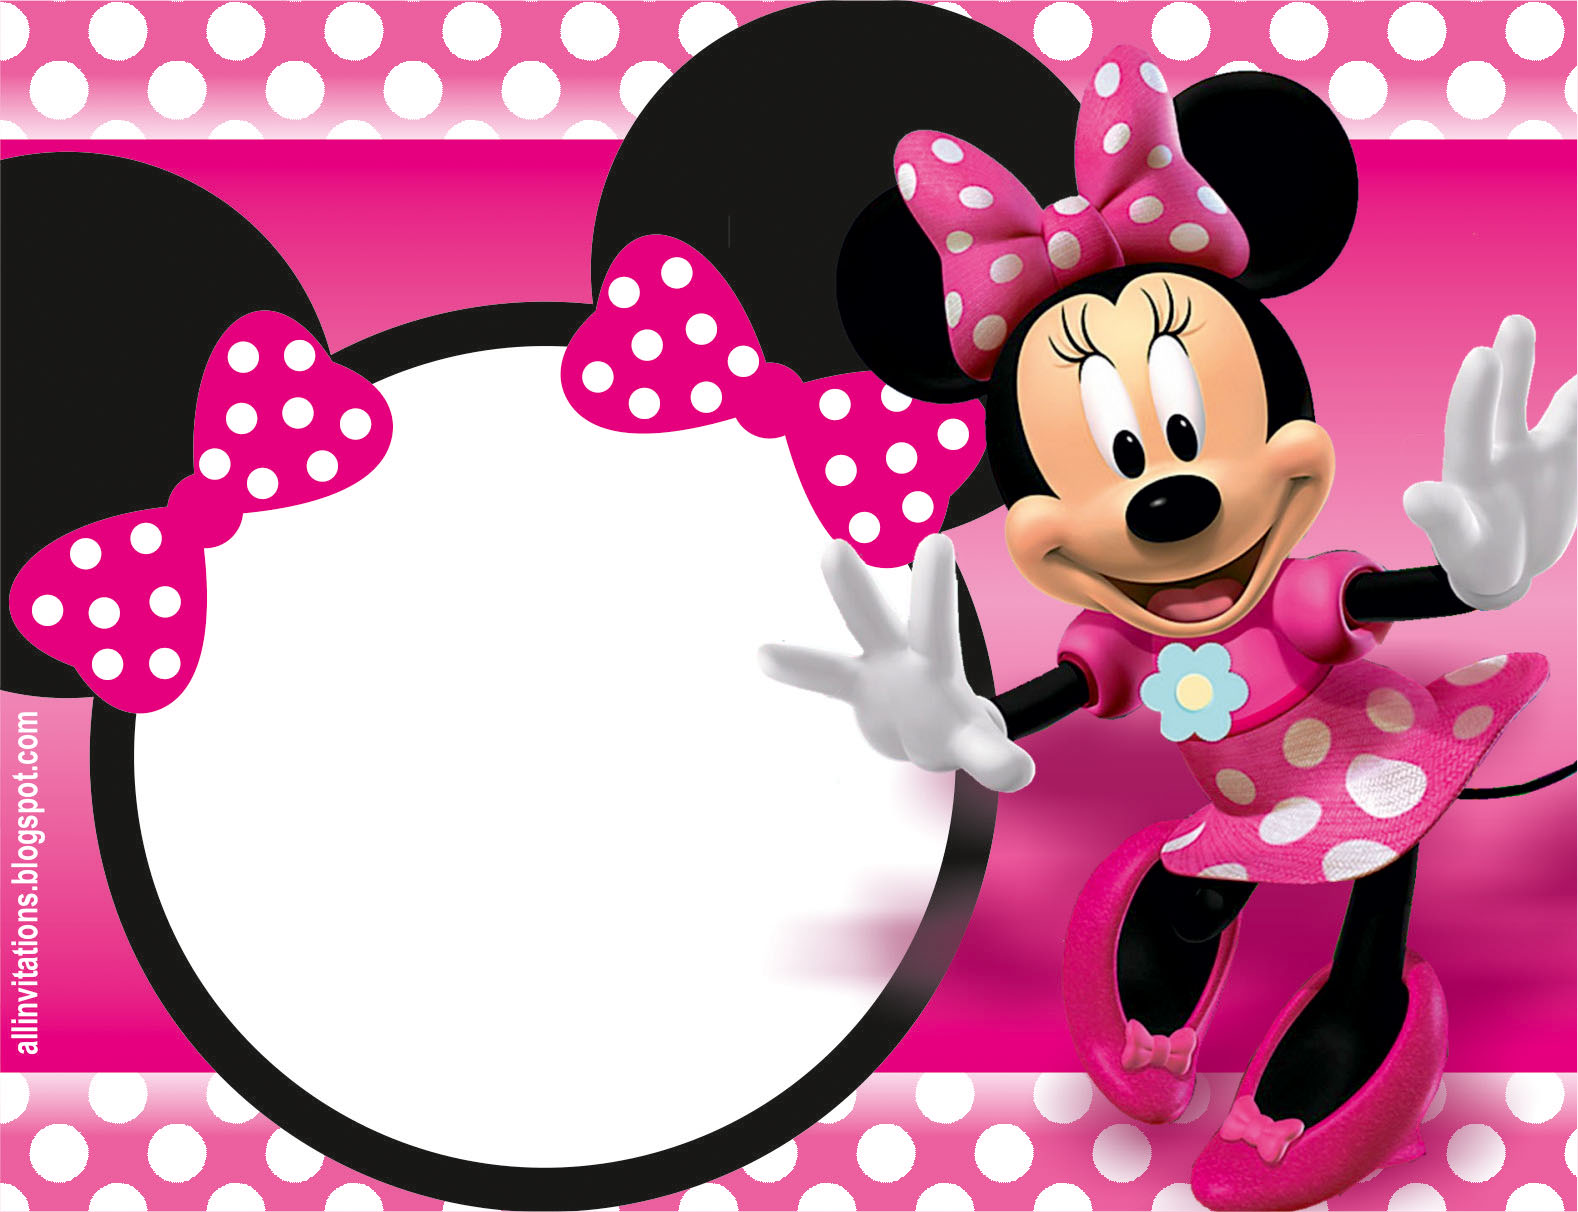 Minnie Mouse Invitations Ideas with adorable invitation example